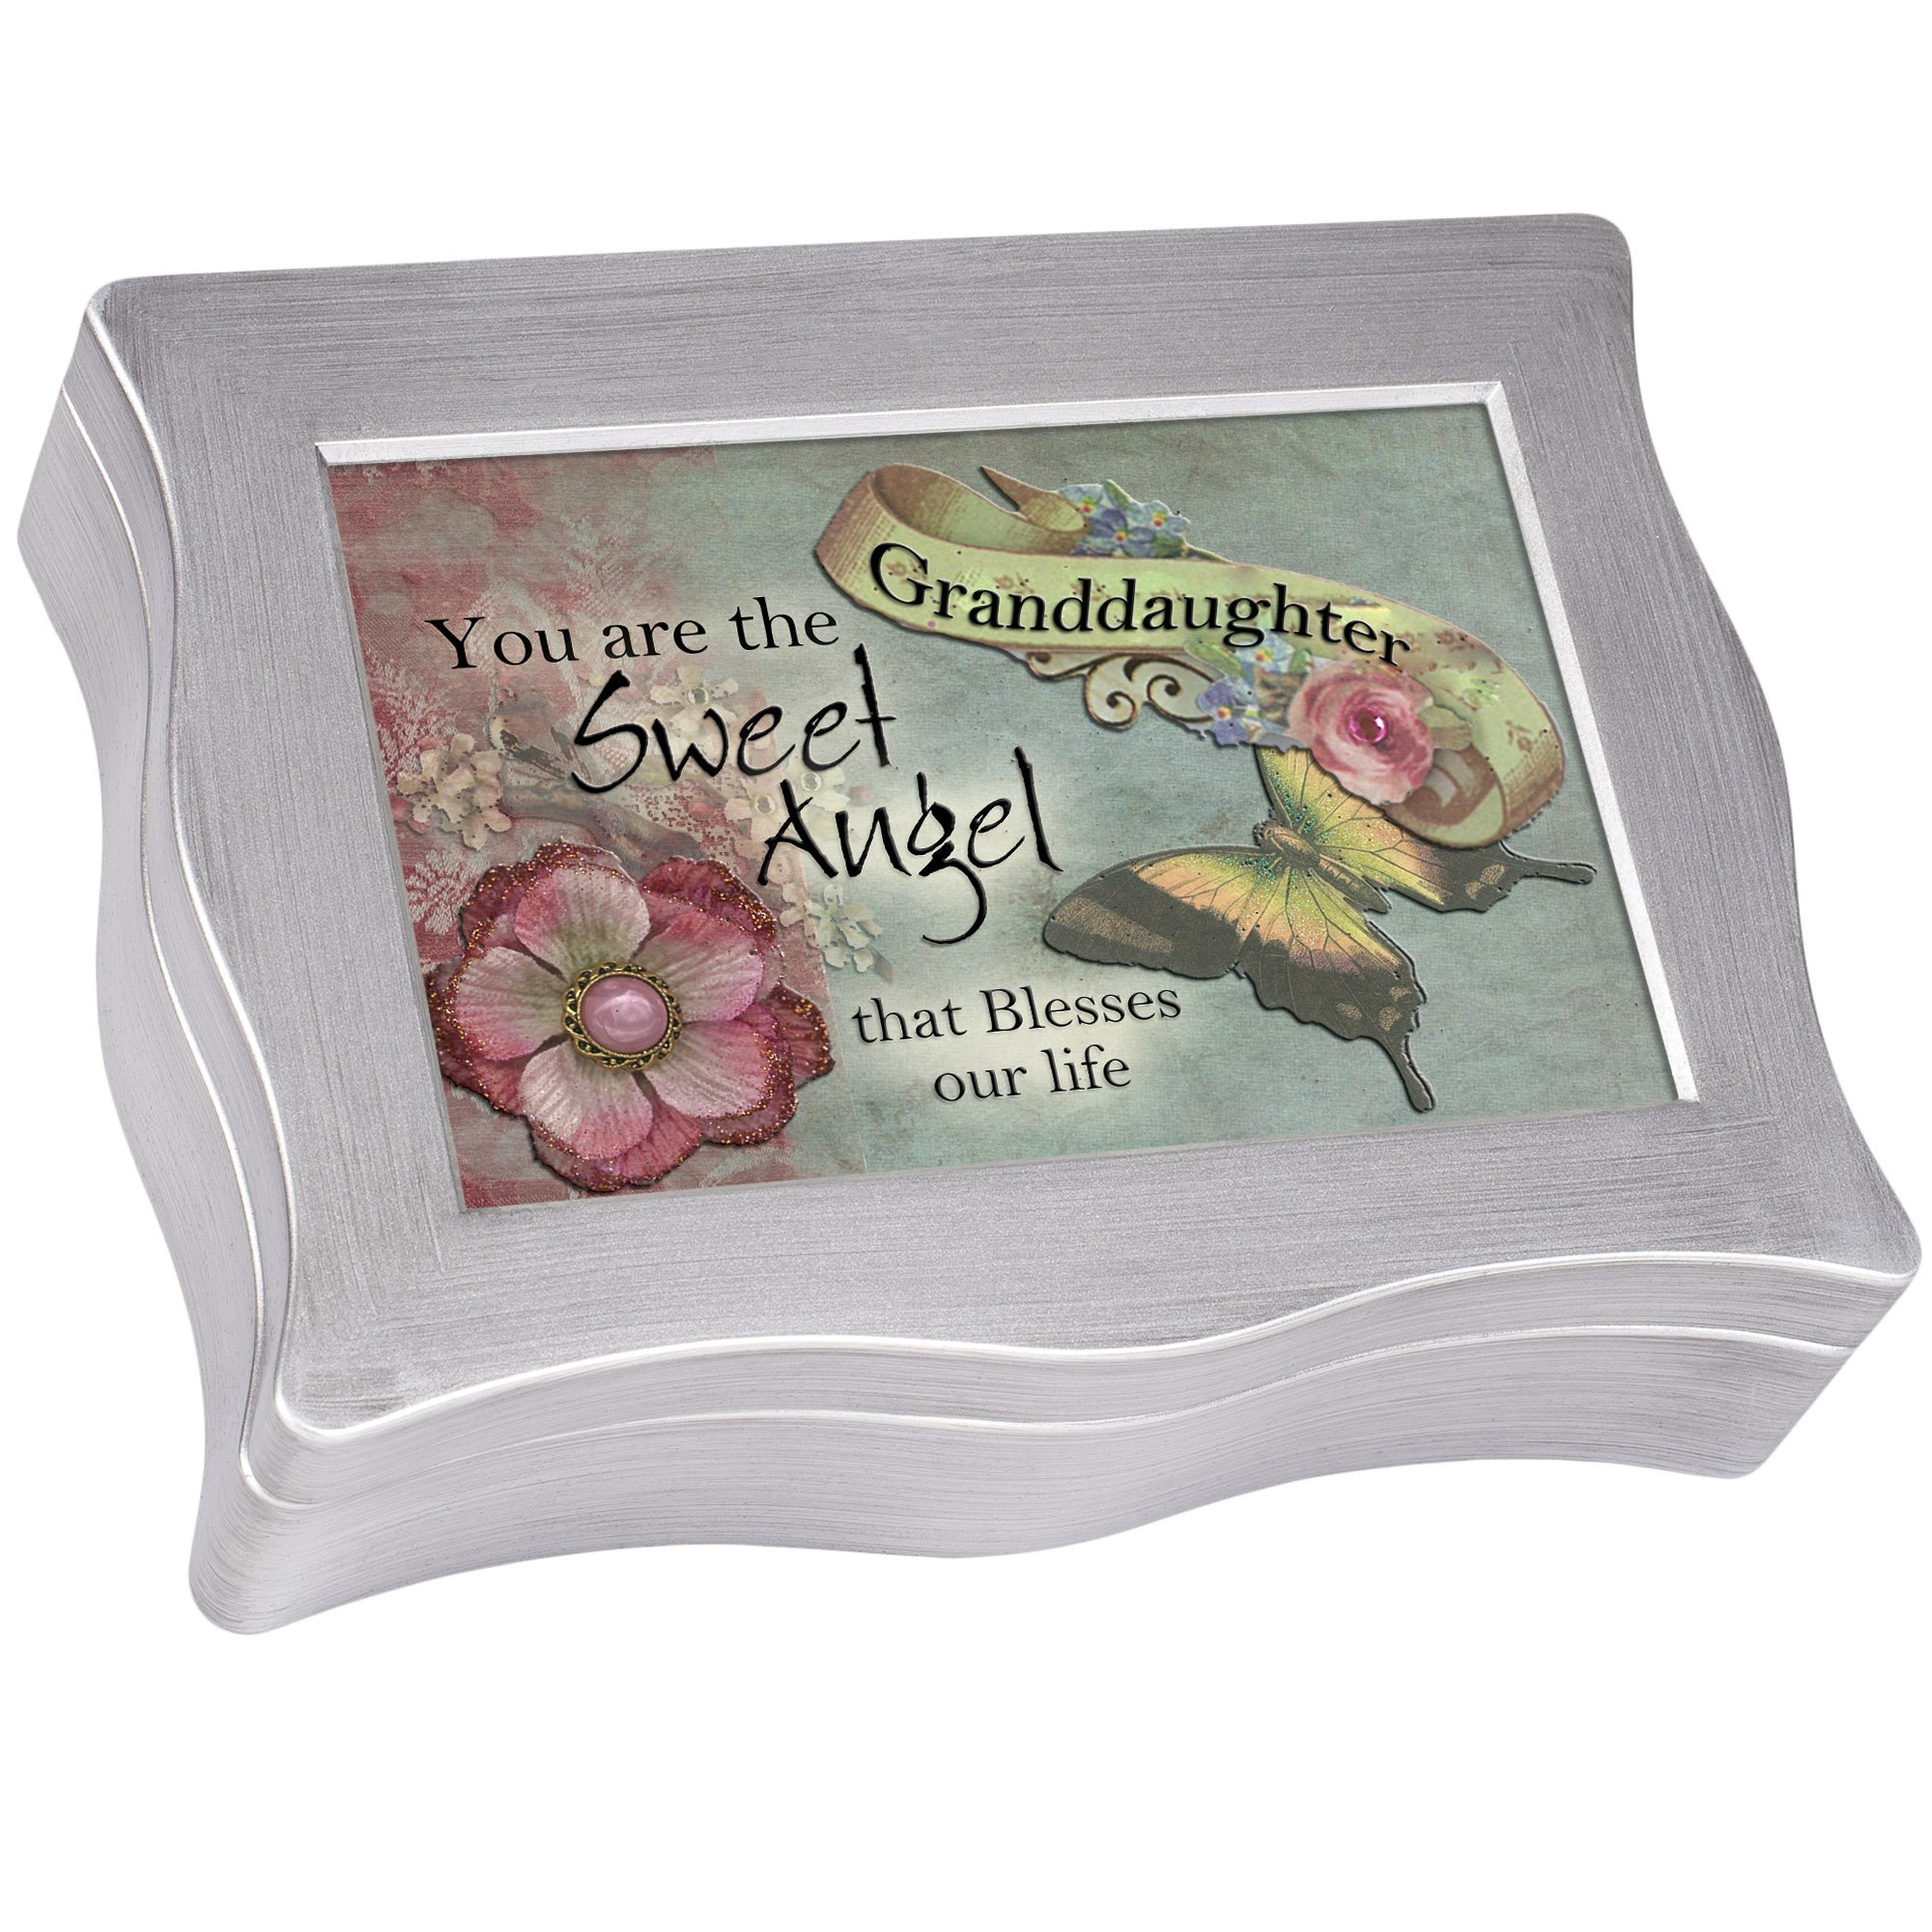 Cottage Garden Granddaughter You are Sweet Brushed Silvertone Jewelry Music Box Plays My Wish